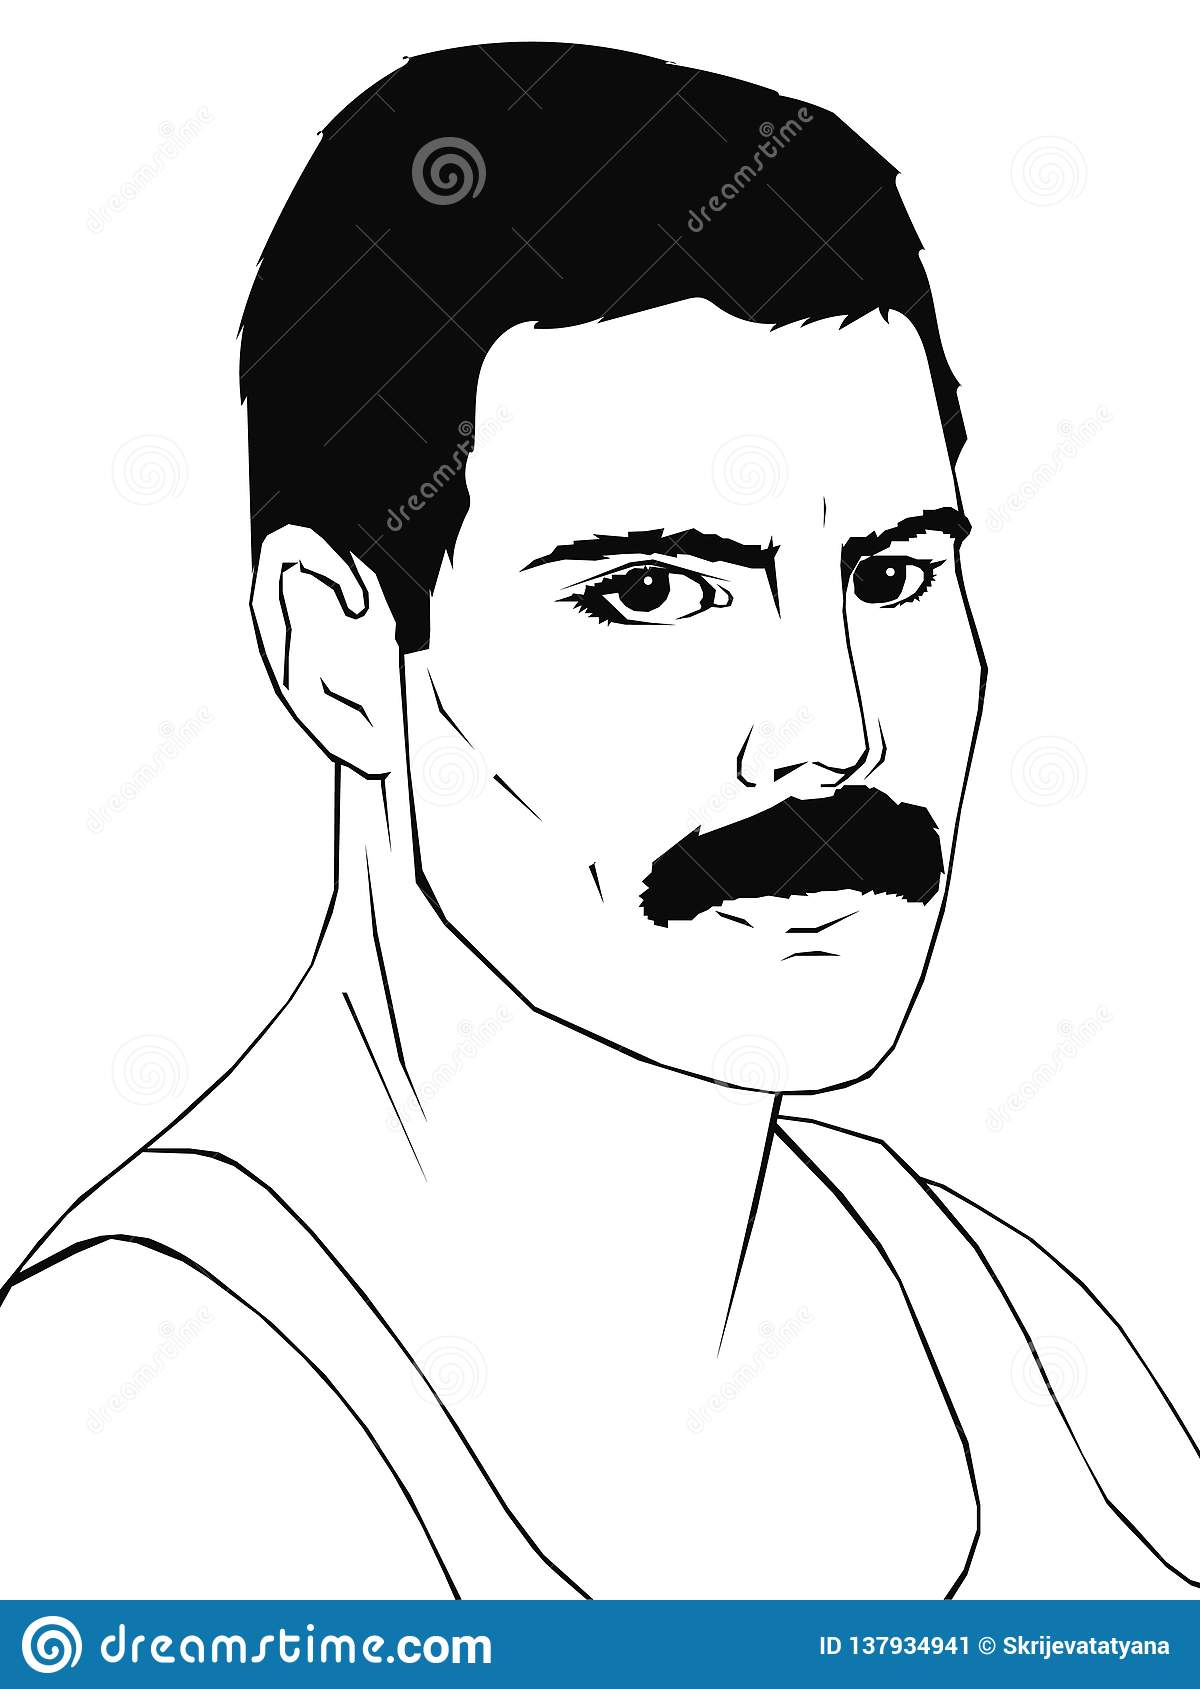 january 29 2019 portrait of freddie mercury editorial use only editorial photo illustration of mercury head 137934941 https www dreamstime com january portrait freddie mercury editorial use black white image137934941